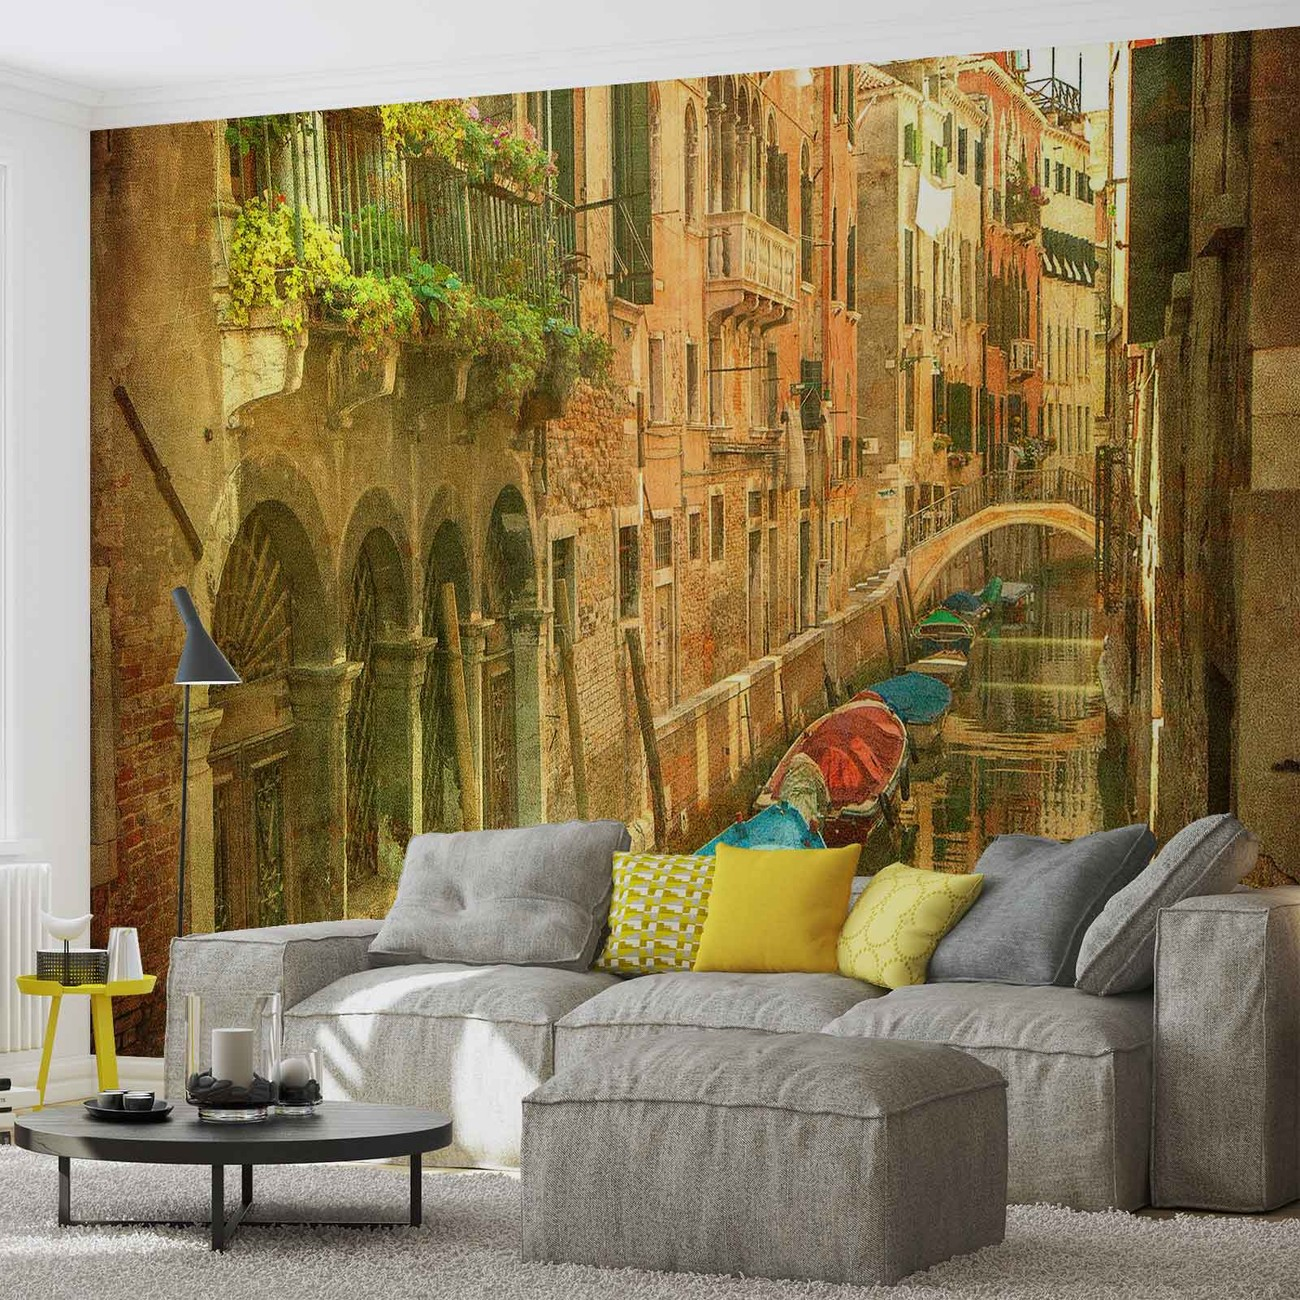 City venice canal wall paper mural buy at europosters for Canal fluminense mural